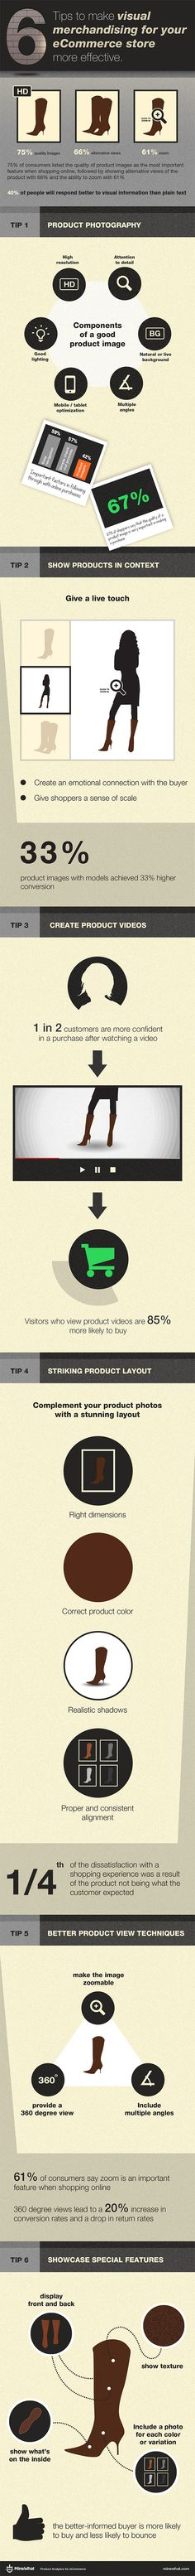 6 Amazing Tips to Create eCommerce Product Images that Wow Your Customers